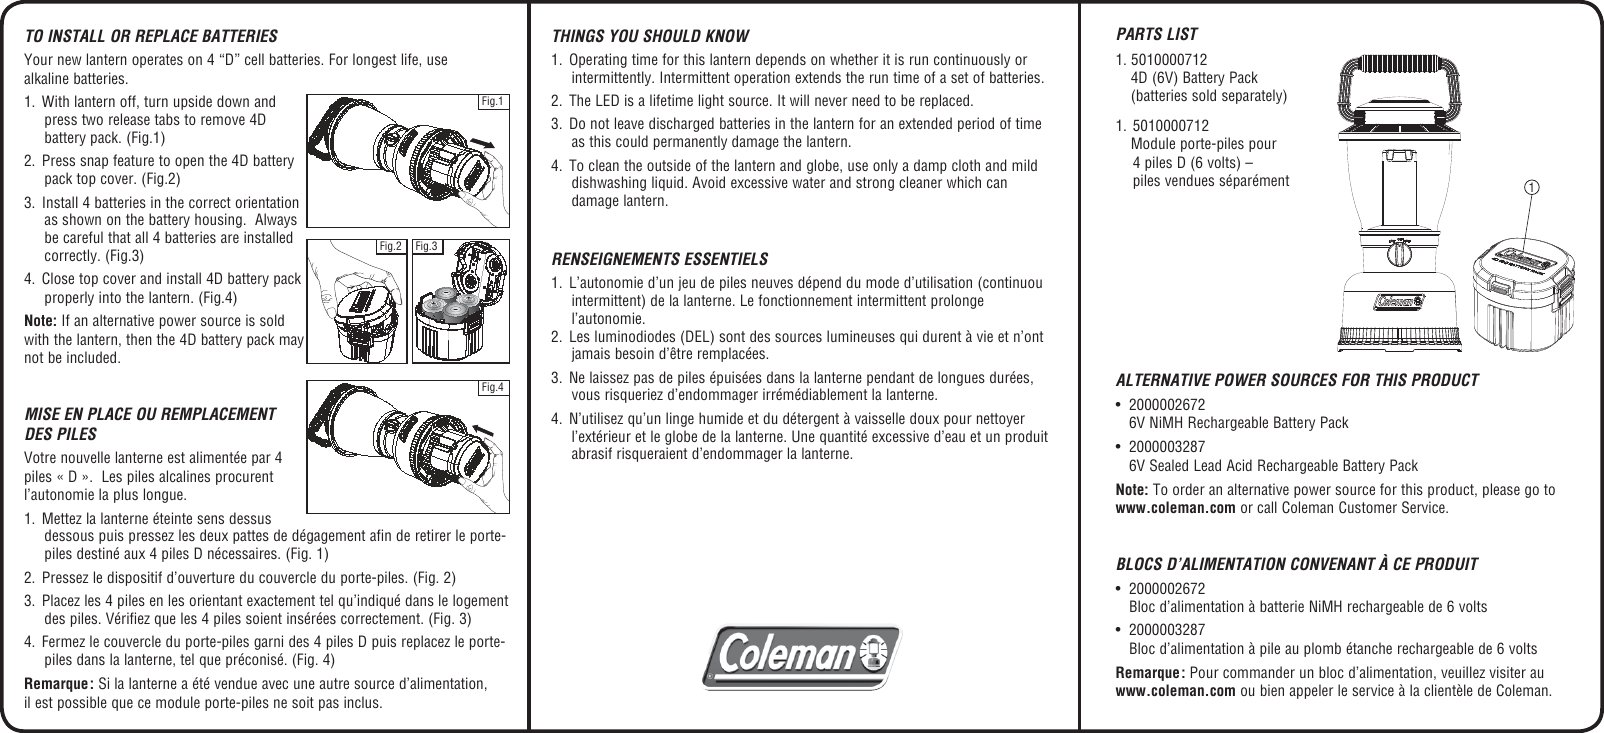 Coleman 4D Xps Users Manual 2000002442 Rugged LED Battery